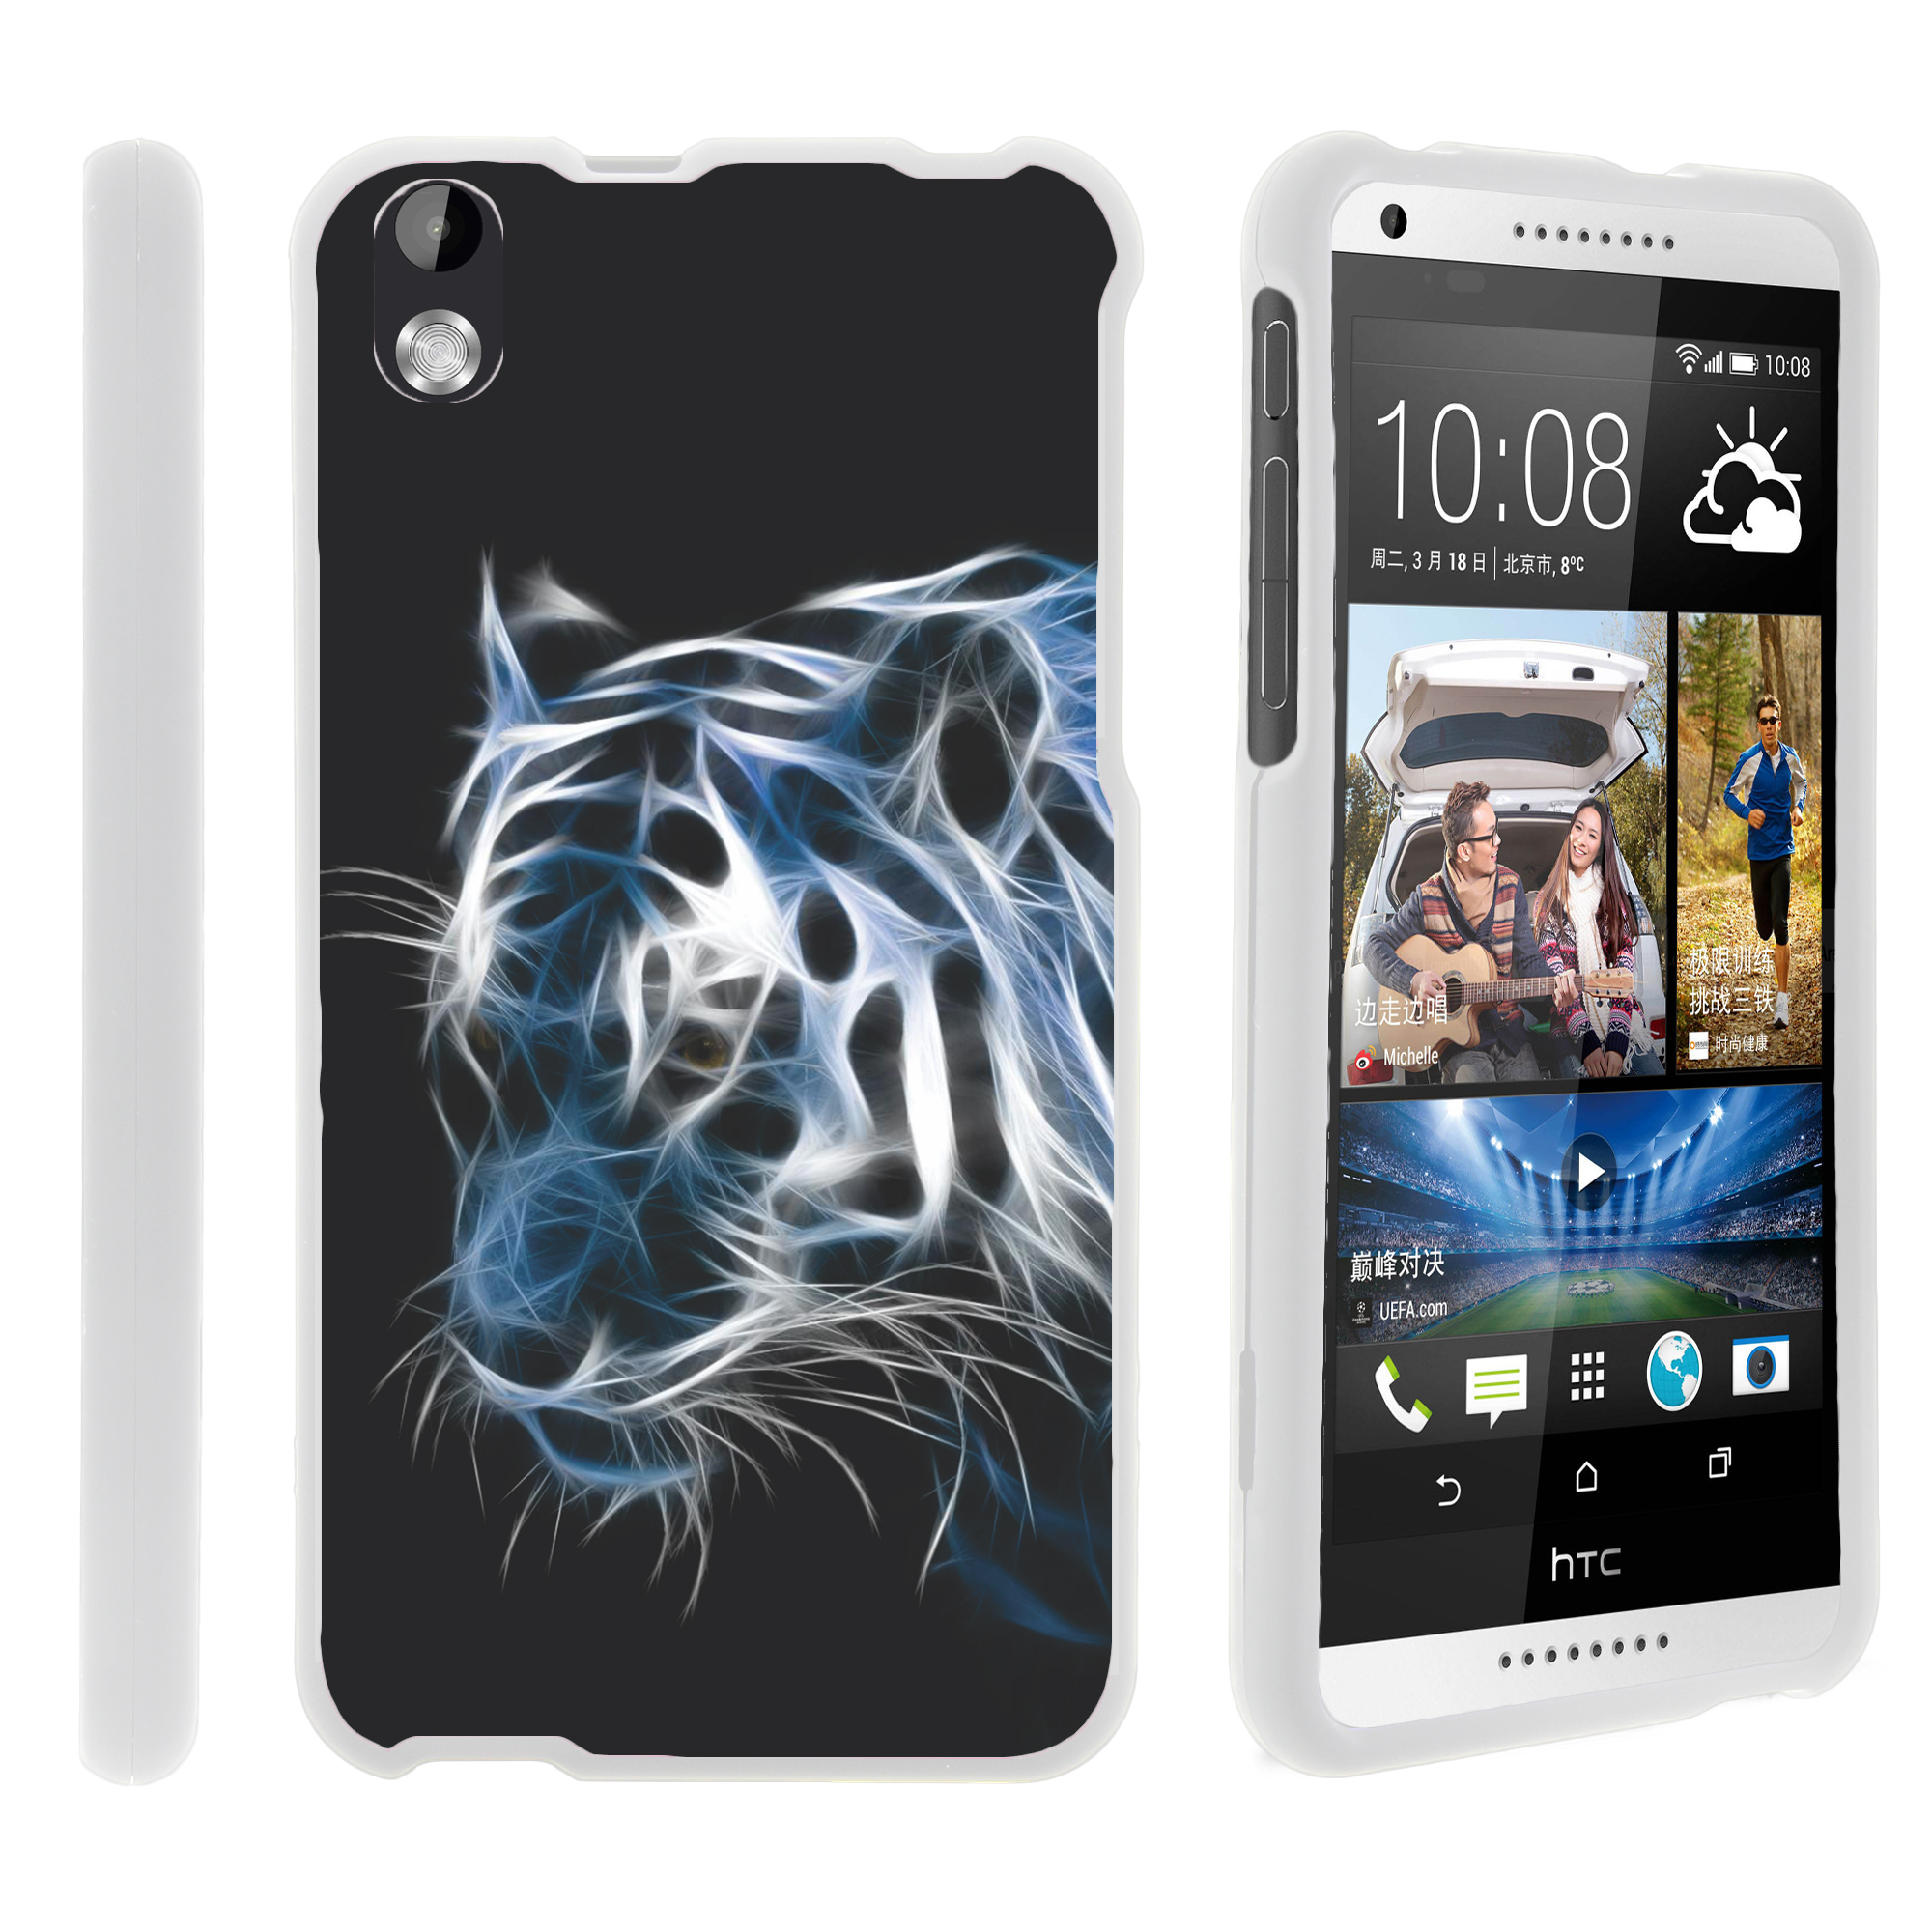 HTC Desire 816, [SNAP SHELL][White] 2 Piece Snap On Rubberized Hard White Plastic Cell Phone Case with Exclusive Art - White Dragon